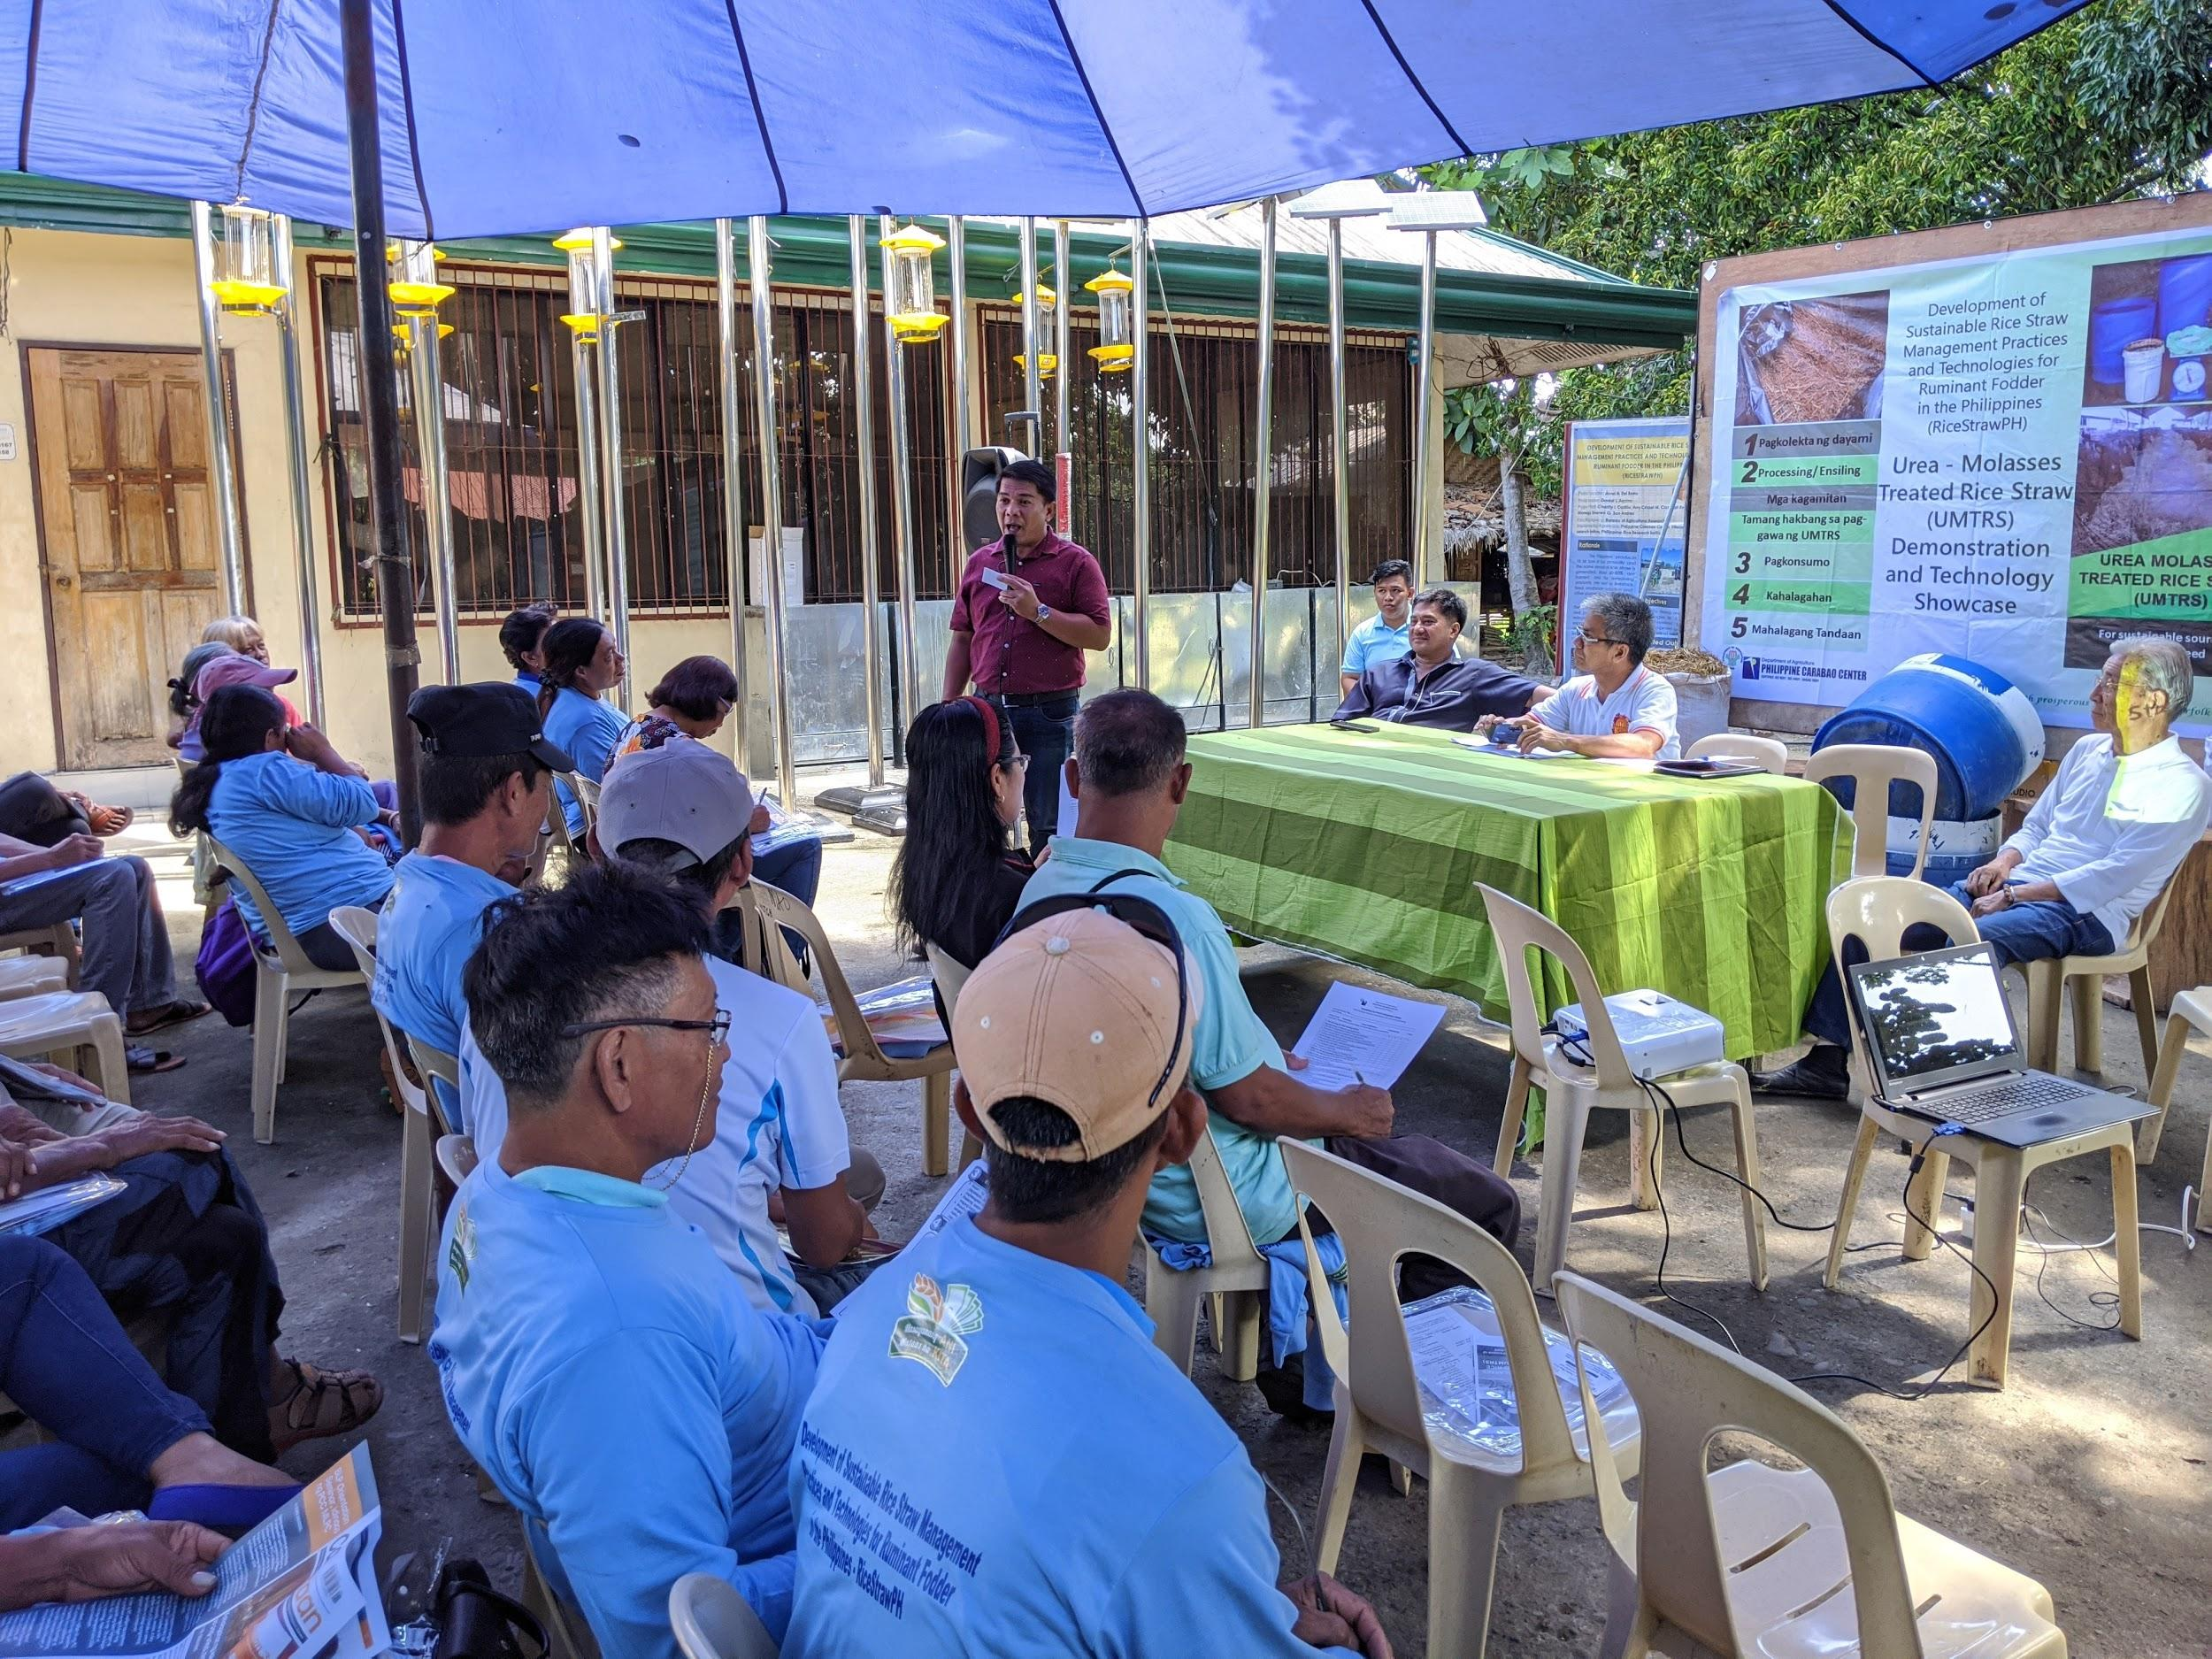 Mayor Abonado welcomes participants to the RiceStrawPH demonstration and technology showcase in M'lang, North Cotabato, a municipality in Southern Philippines. (Photo: IRRI)